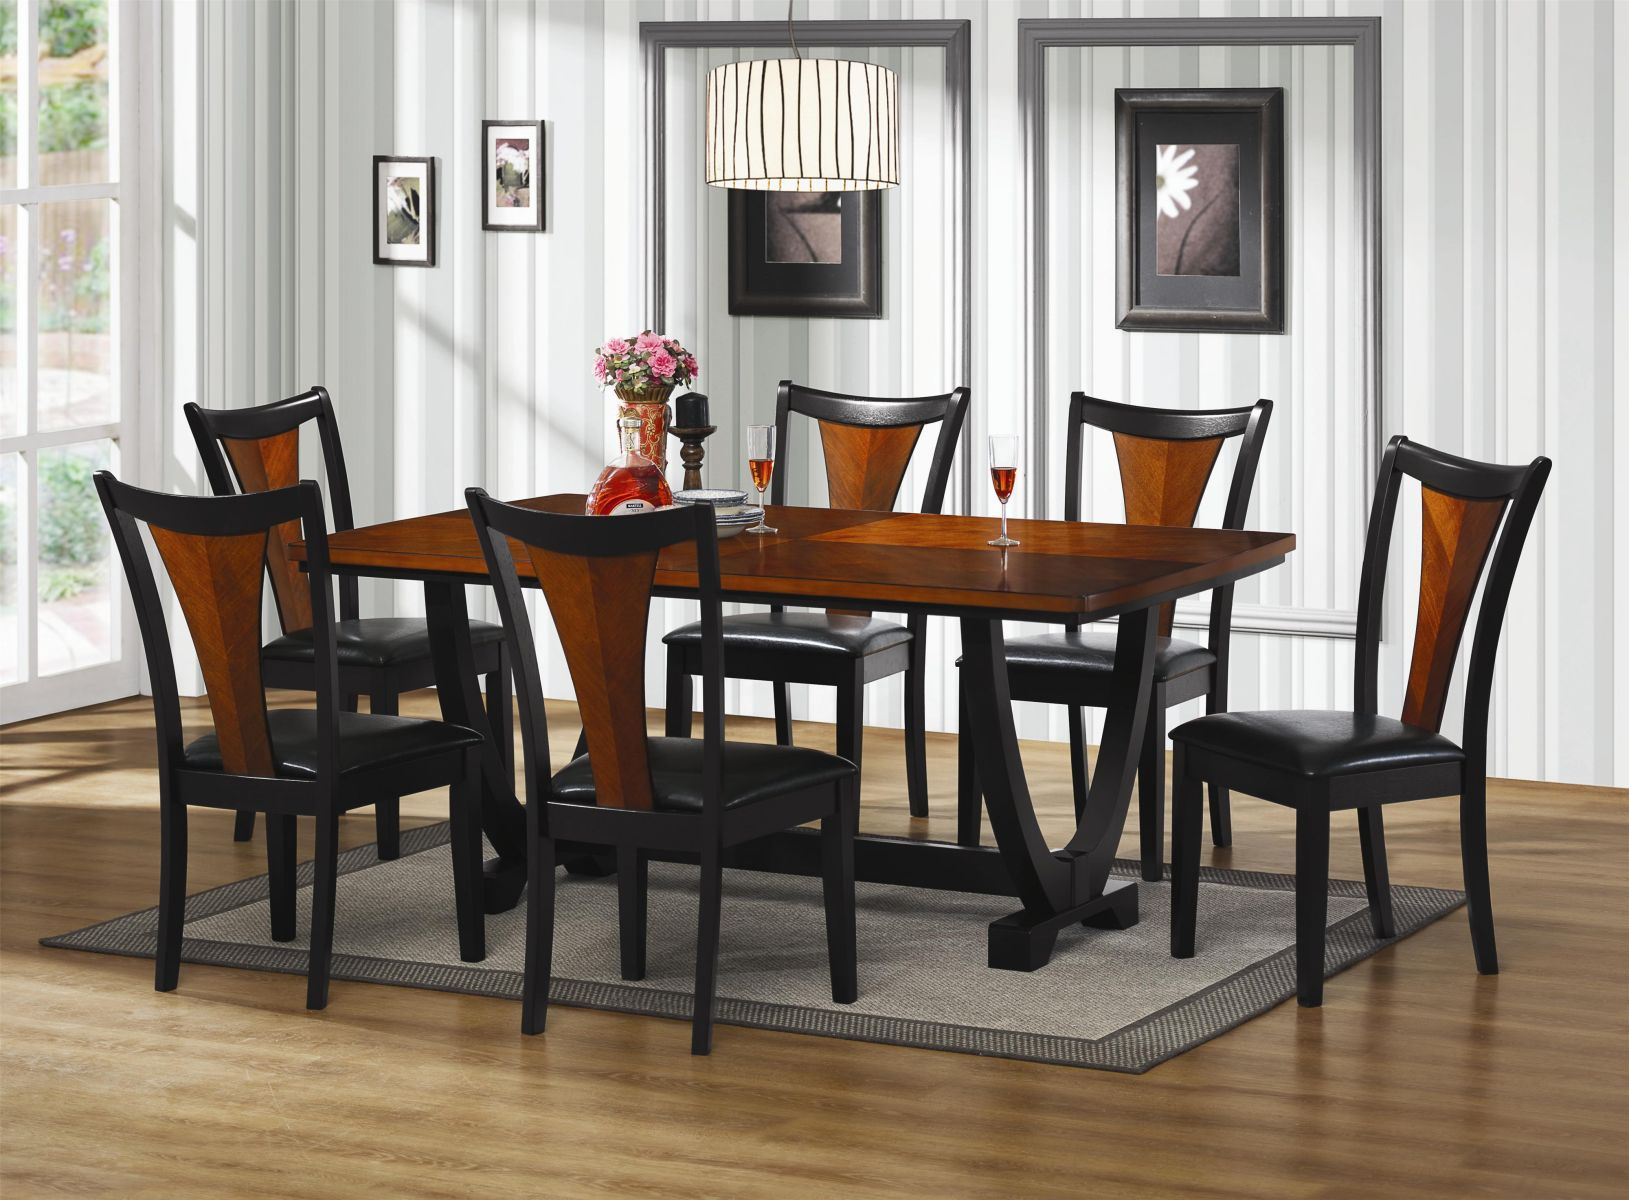 Exceptionnel Unique Dinette Long Island New York   Coaster Dining Room Set Long Island  New York Dinette Sets New York , Dinette Sets Long Island , Dining Room Sets  New ...